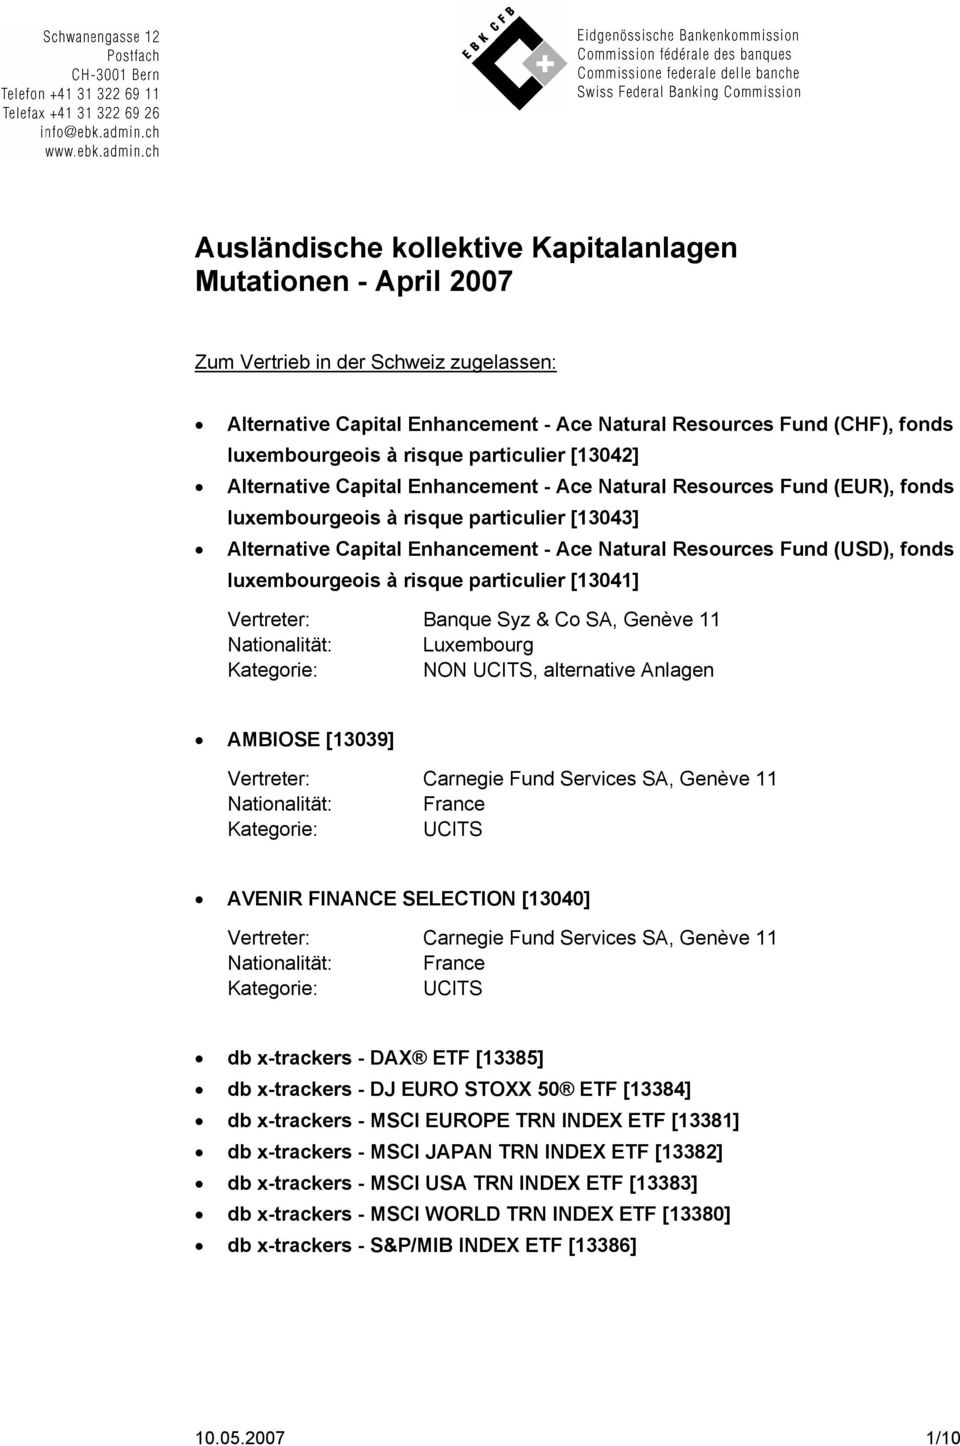 Resources Fund (USD), fonds luxembourgeois à risque particulier [13041] Banque Syz & Co SA, Genève 11 NON, alternative Anlagen AMBIOSE [13039] Carnegie Fund Services SA, Genève 11 France AVENIR